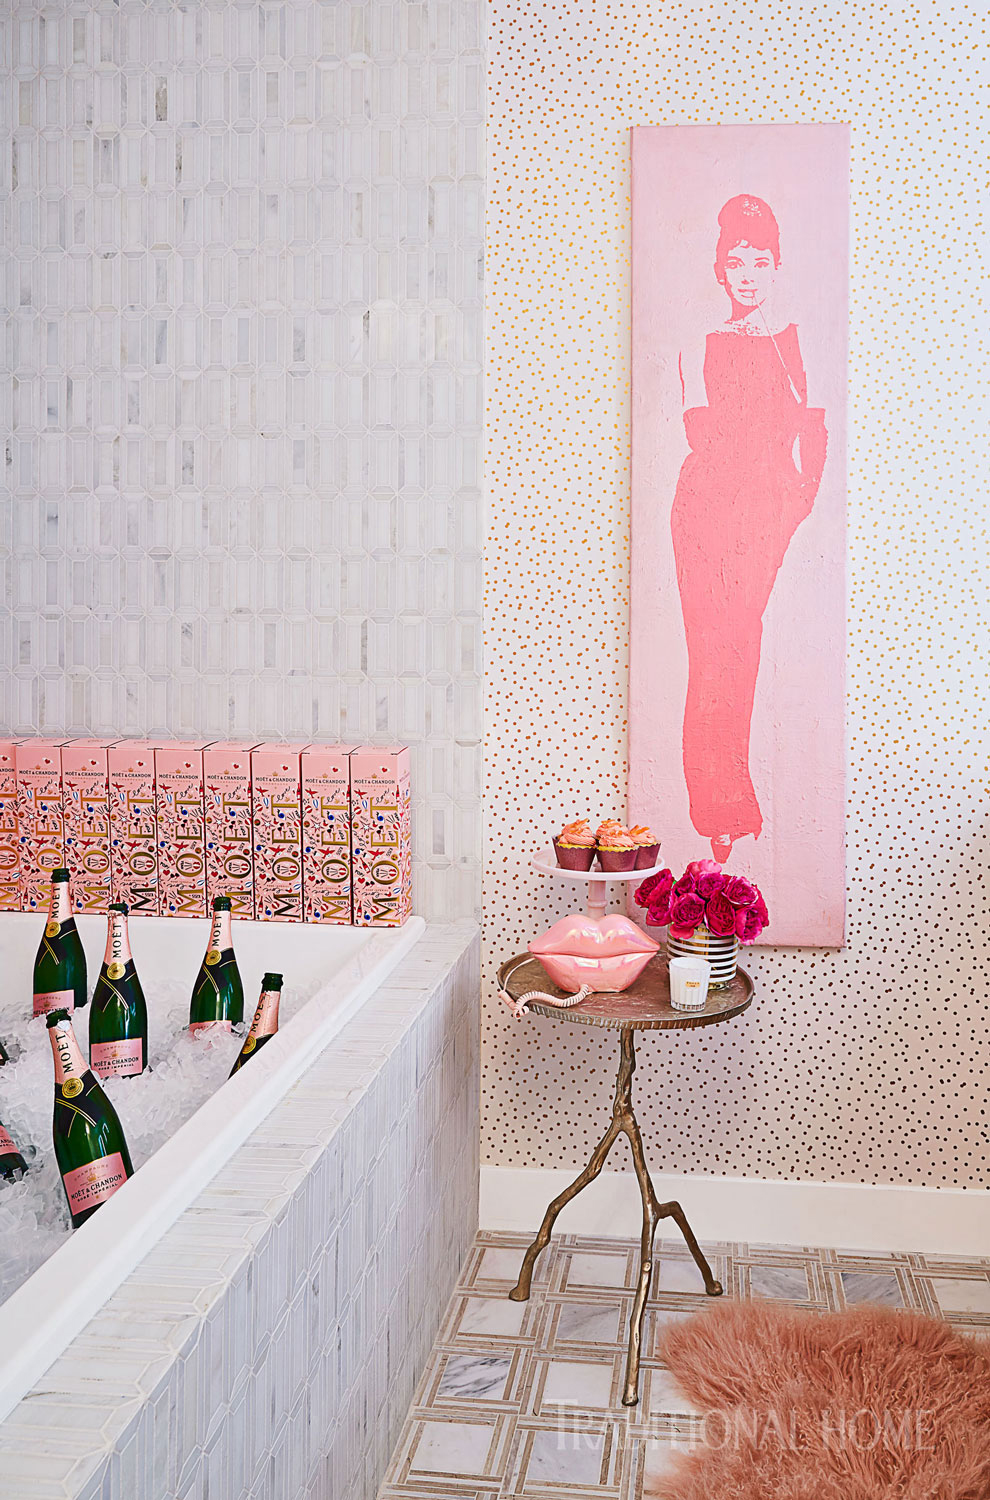 bathroom with tub full of rose